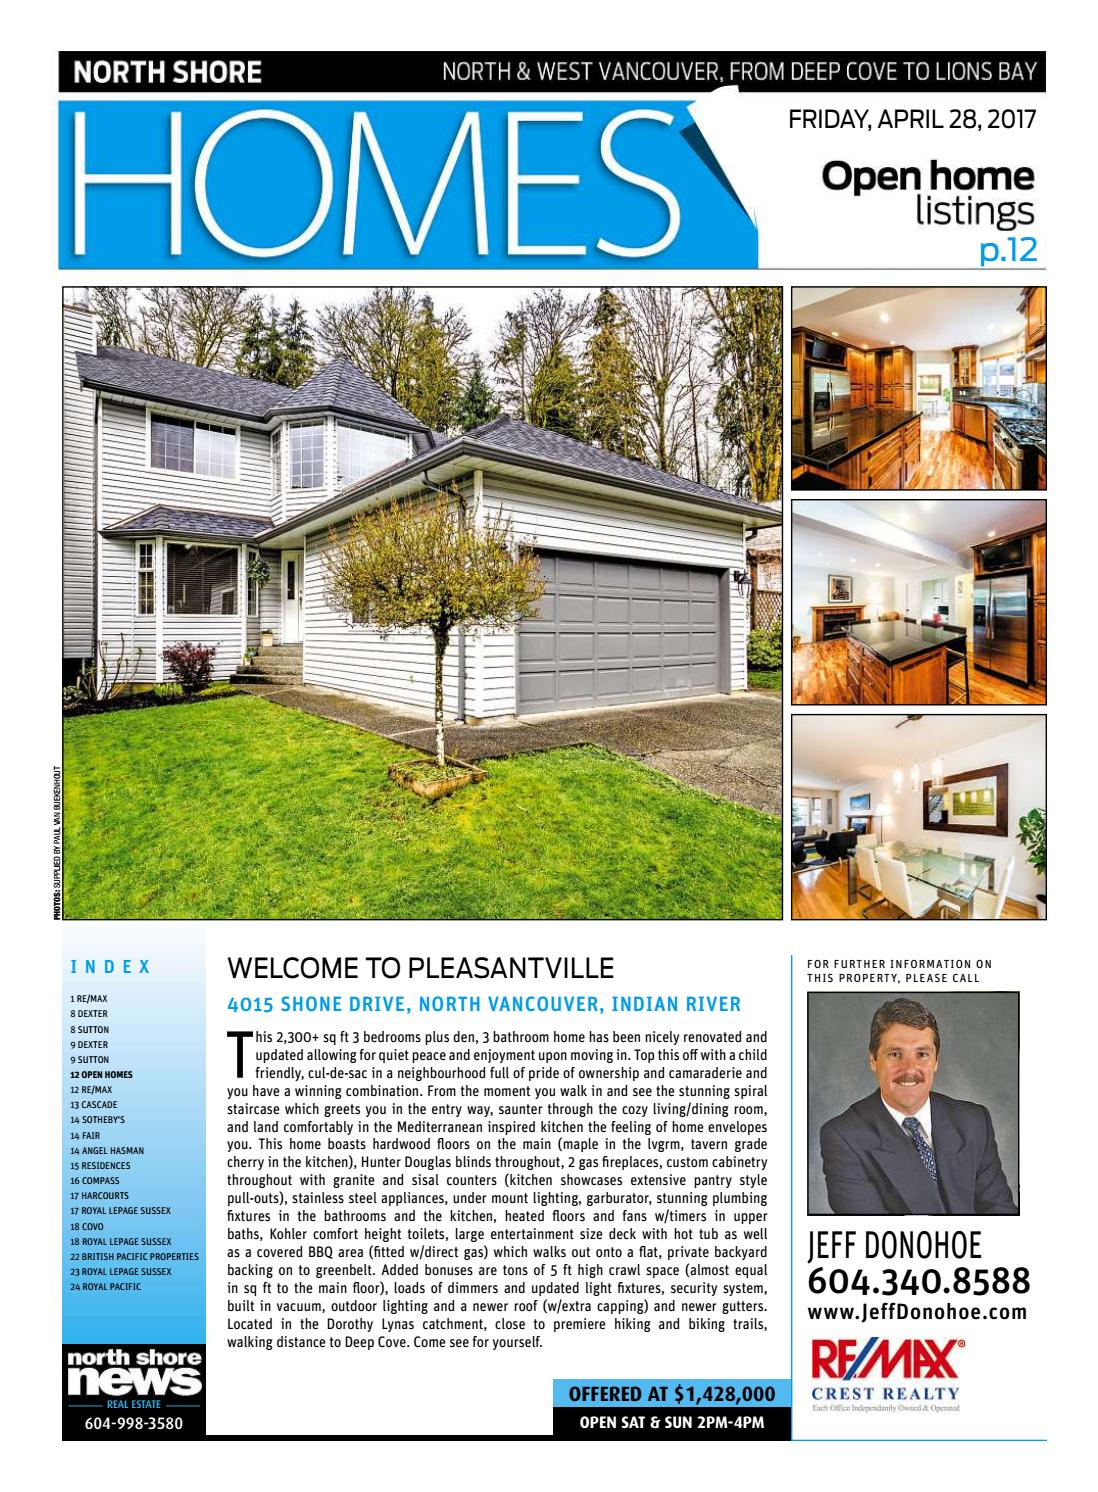 North Shore Homes Real Estate April 28 2017 by NSN Features - issuu